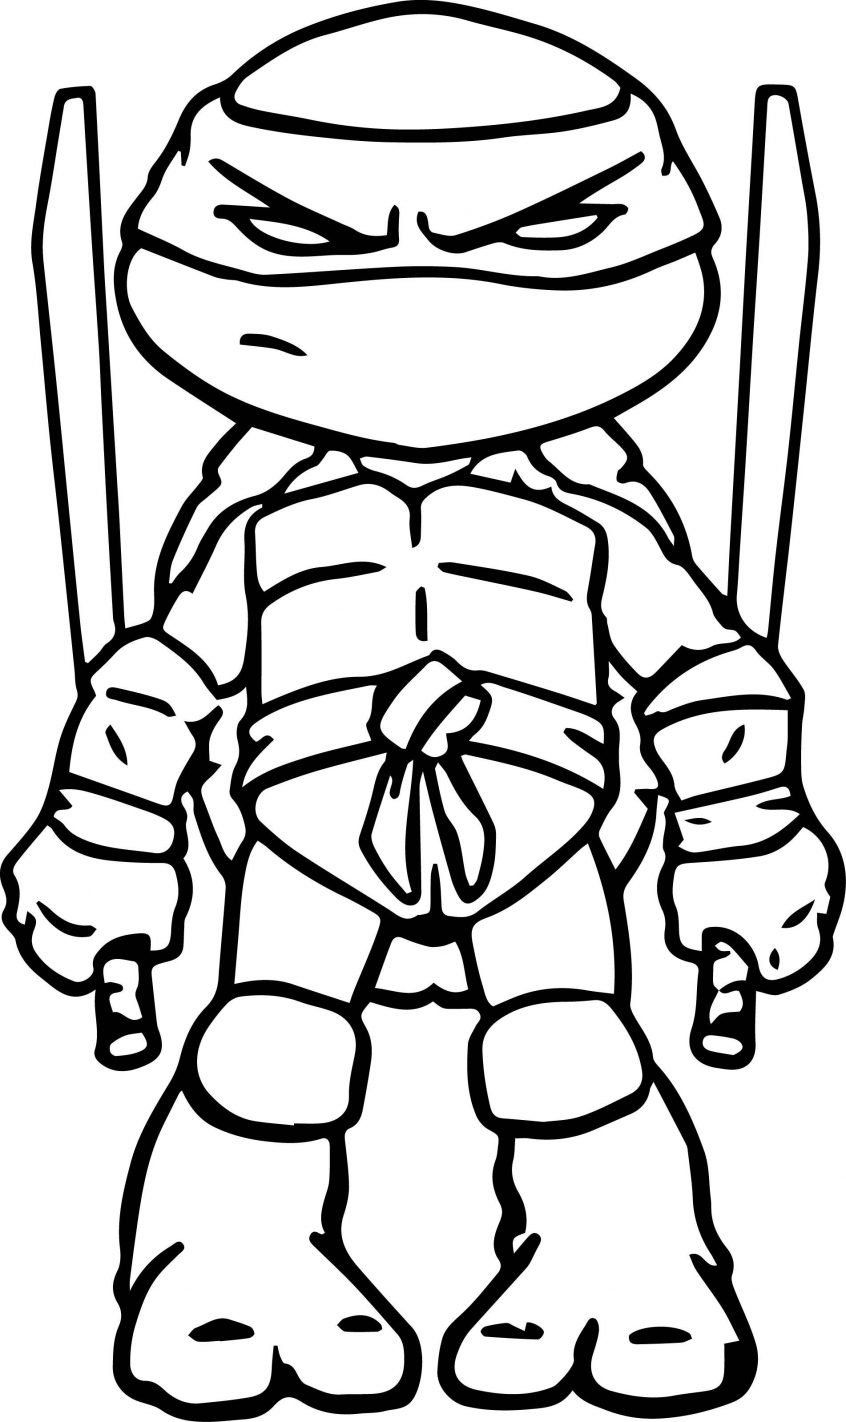 Ninja Turtle Coloring Pages New Coloring Free Printable Coloring Pages Teenage Mutant Ninja Turtle Coloring Pages Turtle Coloring Pages Cartoon Coloring Pages